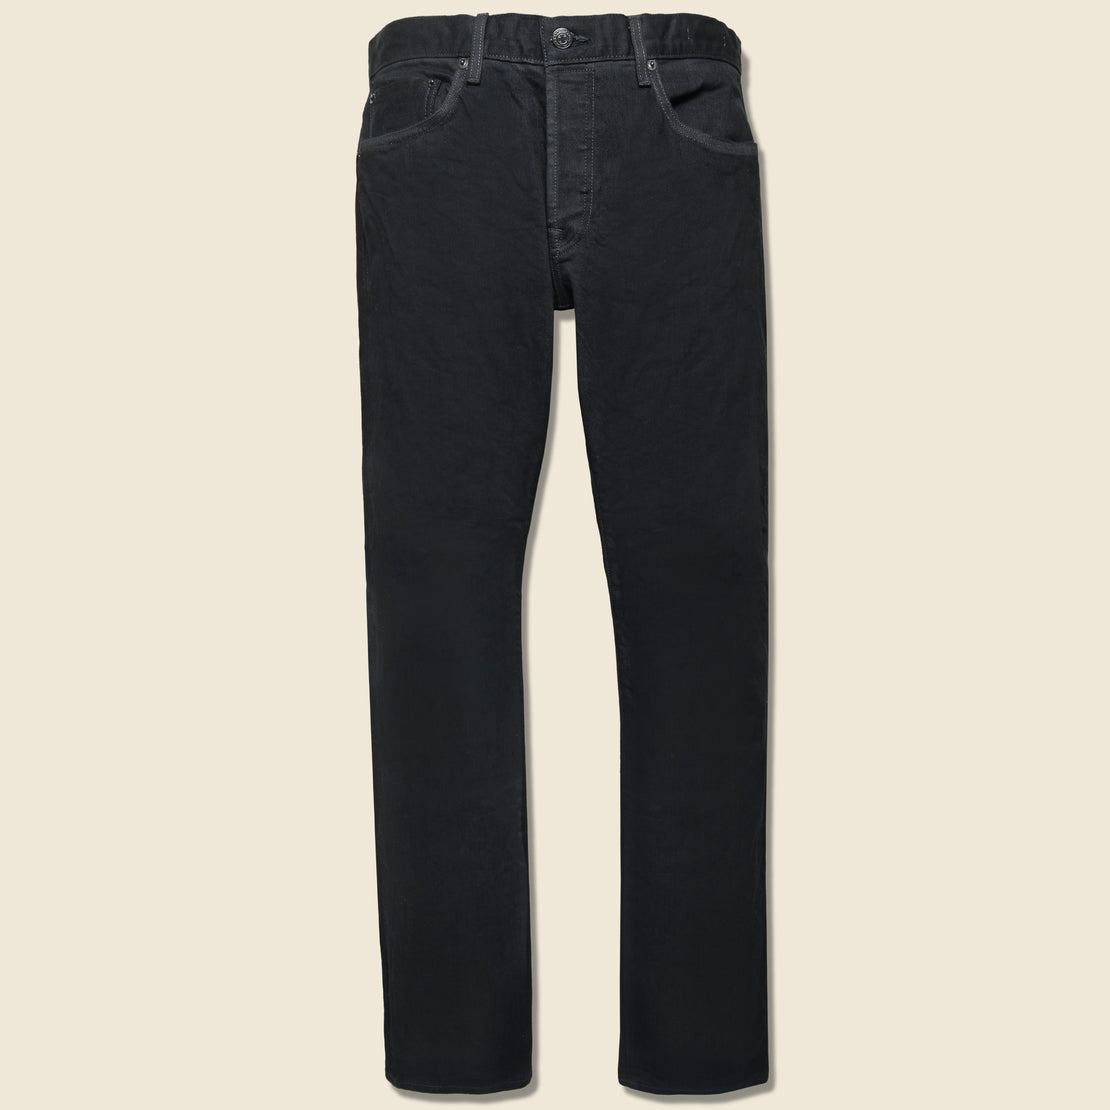 Imogene + Willie Barton Slim Jean - Black Rinse